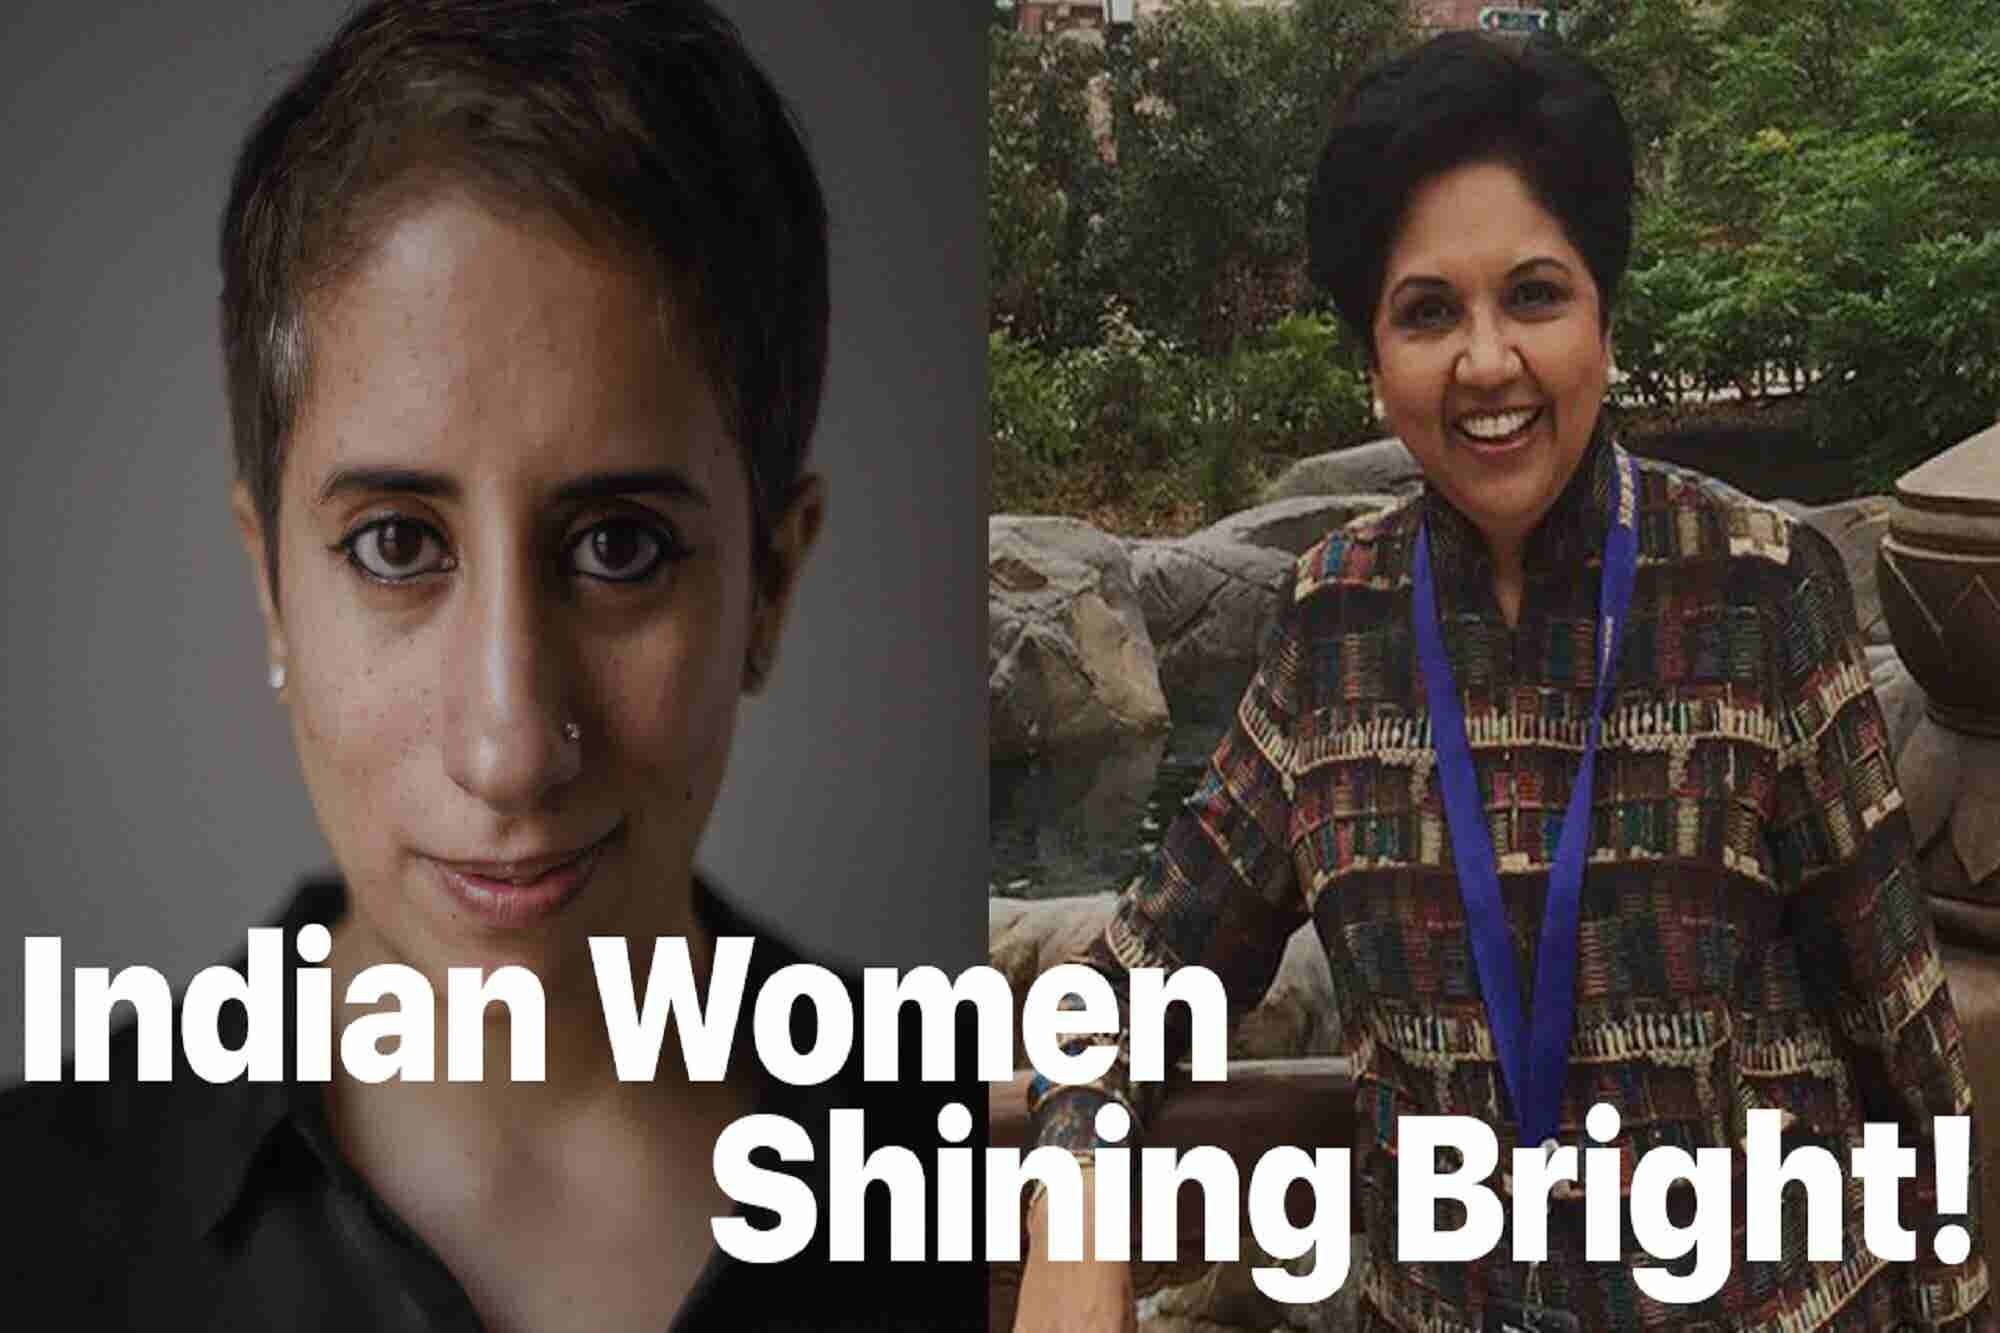 Week Wrap Up: From an Indian Shining Bright at the Oscars to Indra Nooyi's Entry in Amazon, Here's All You Need to Know